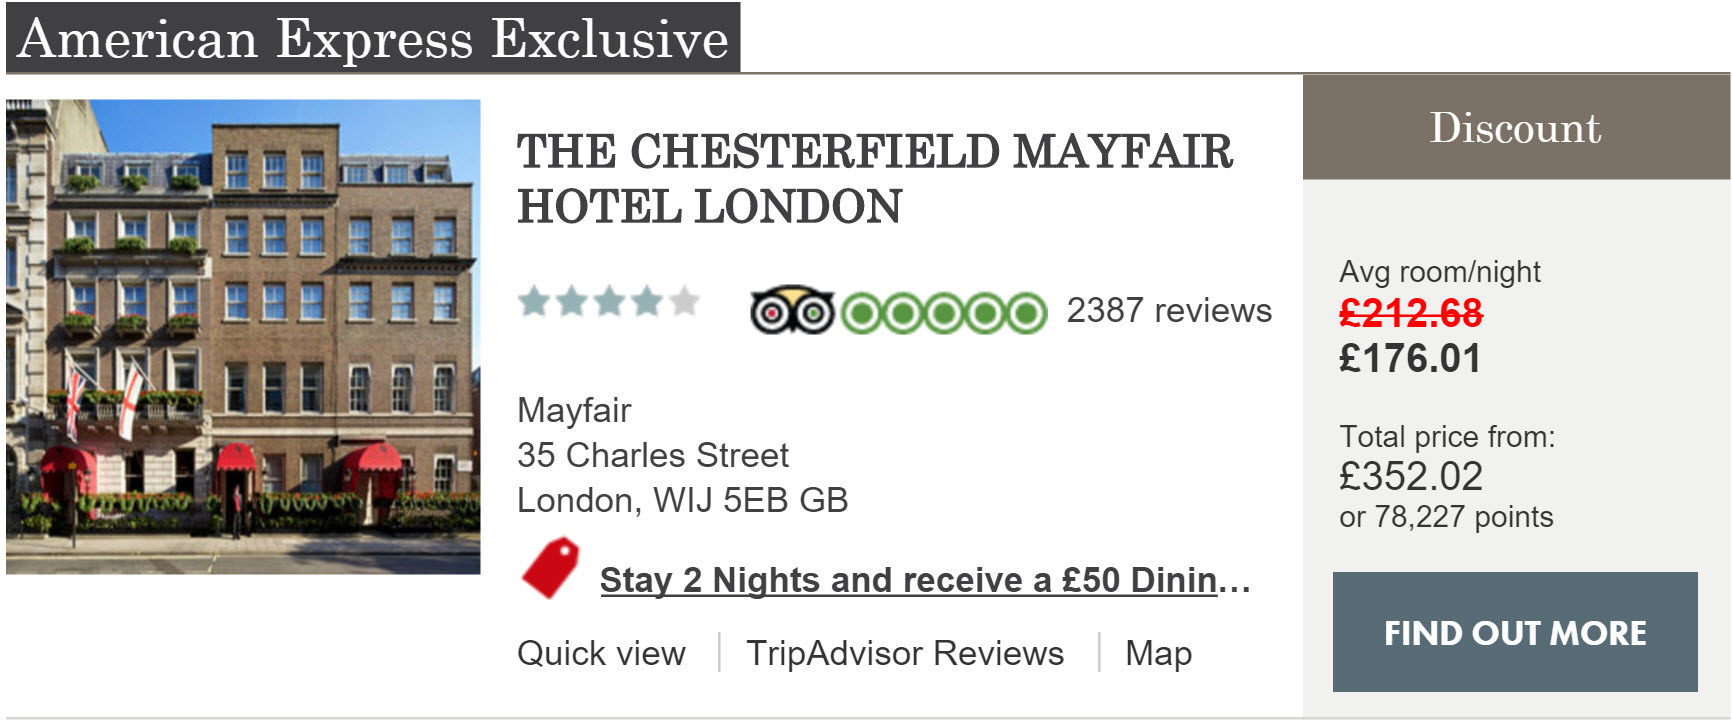 amex-travel-chesterfield-mayfair